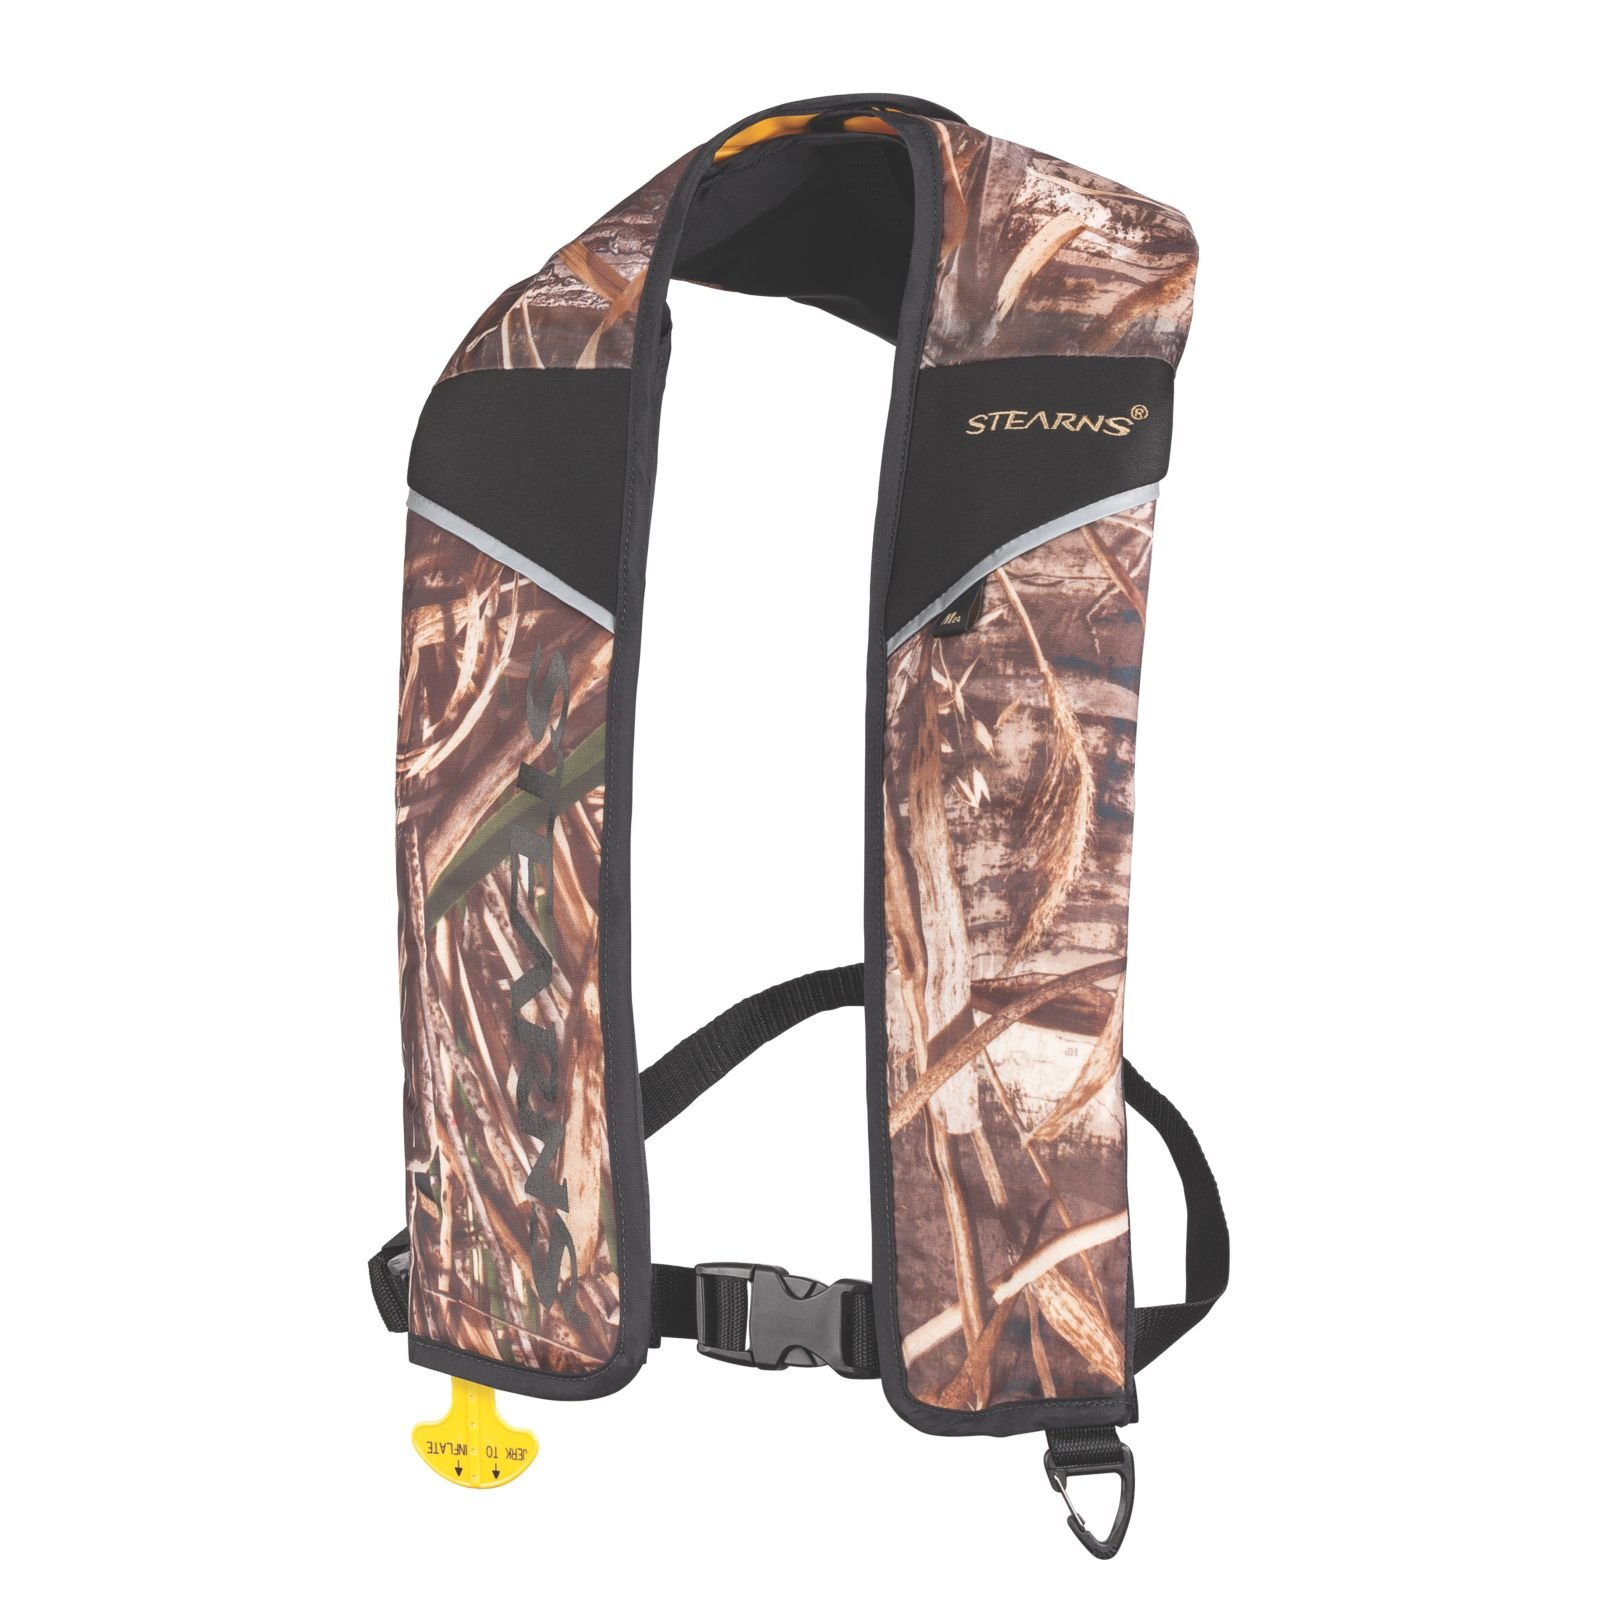 Stearns 24g Manual Life Vest, RealTree Max-4 Camo by Stearns